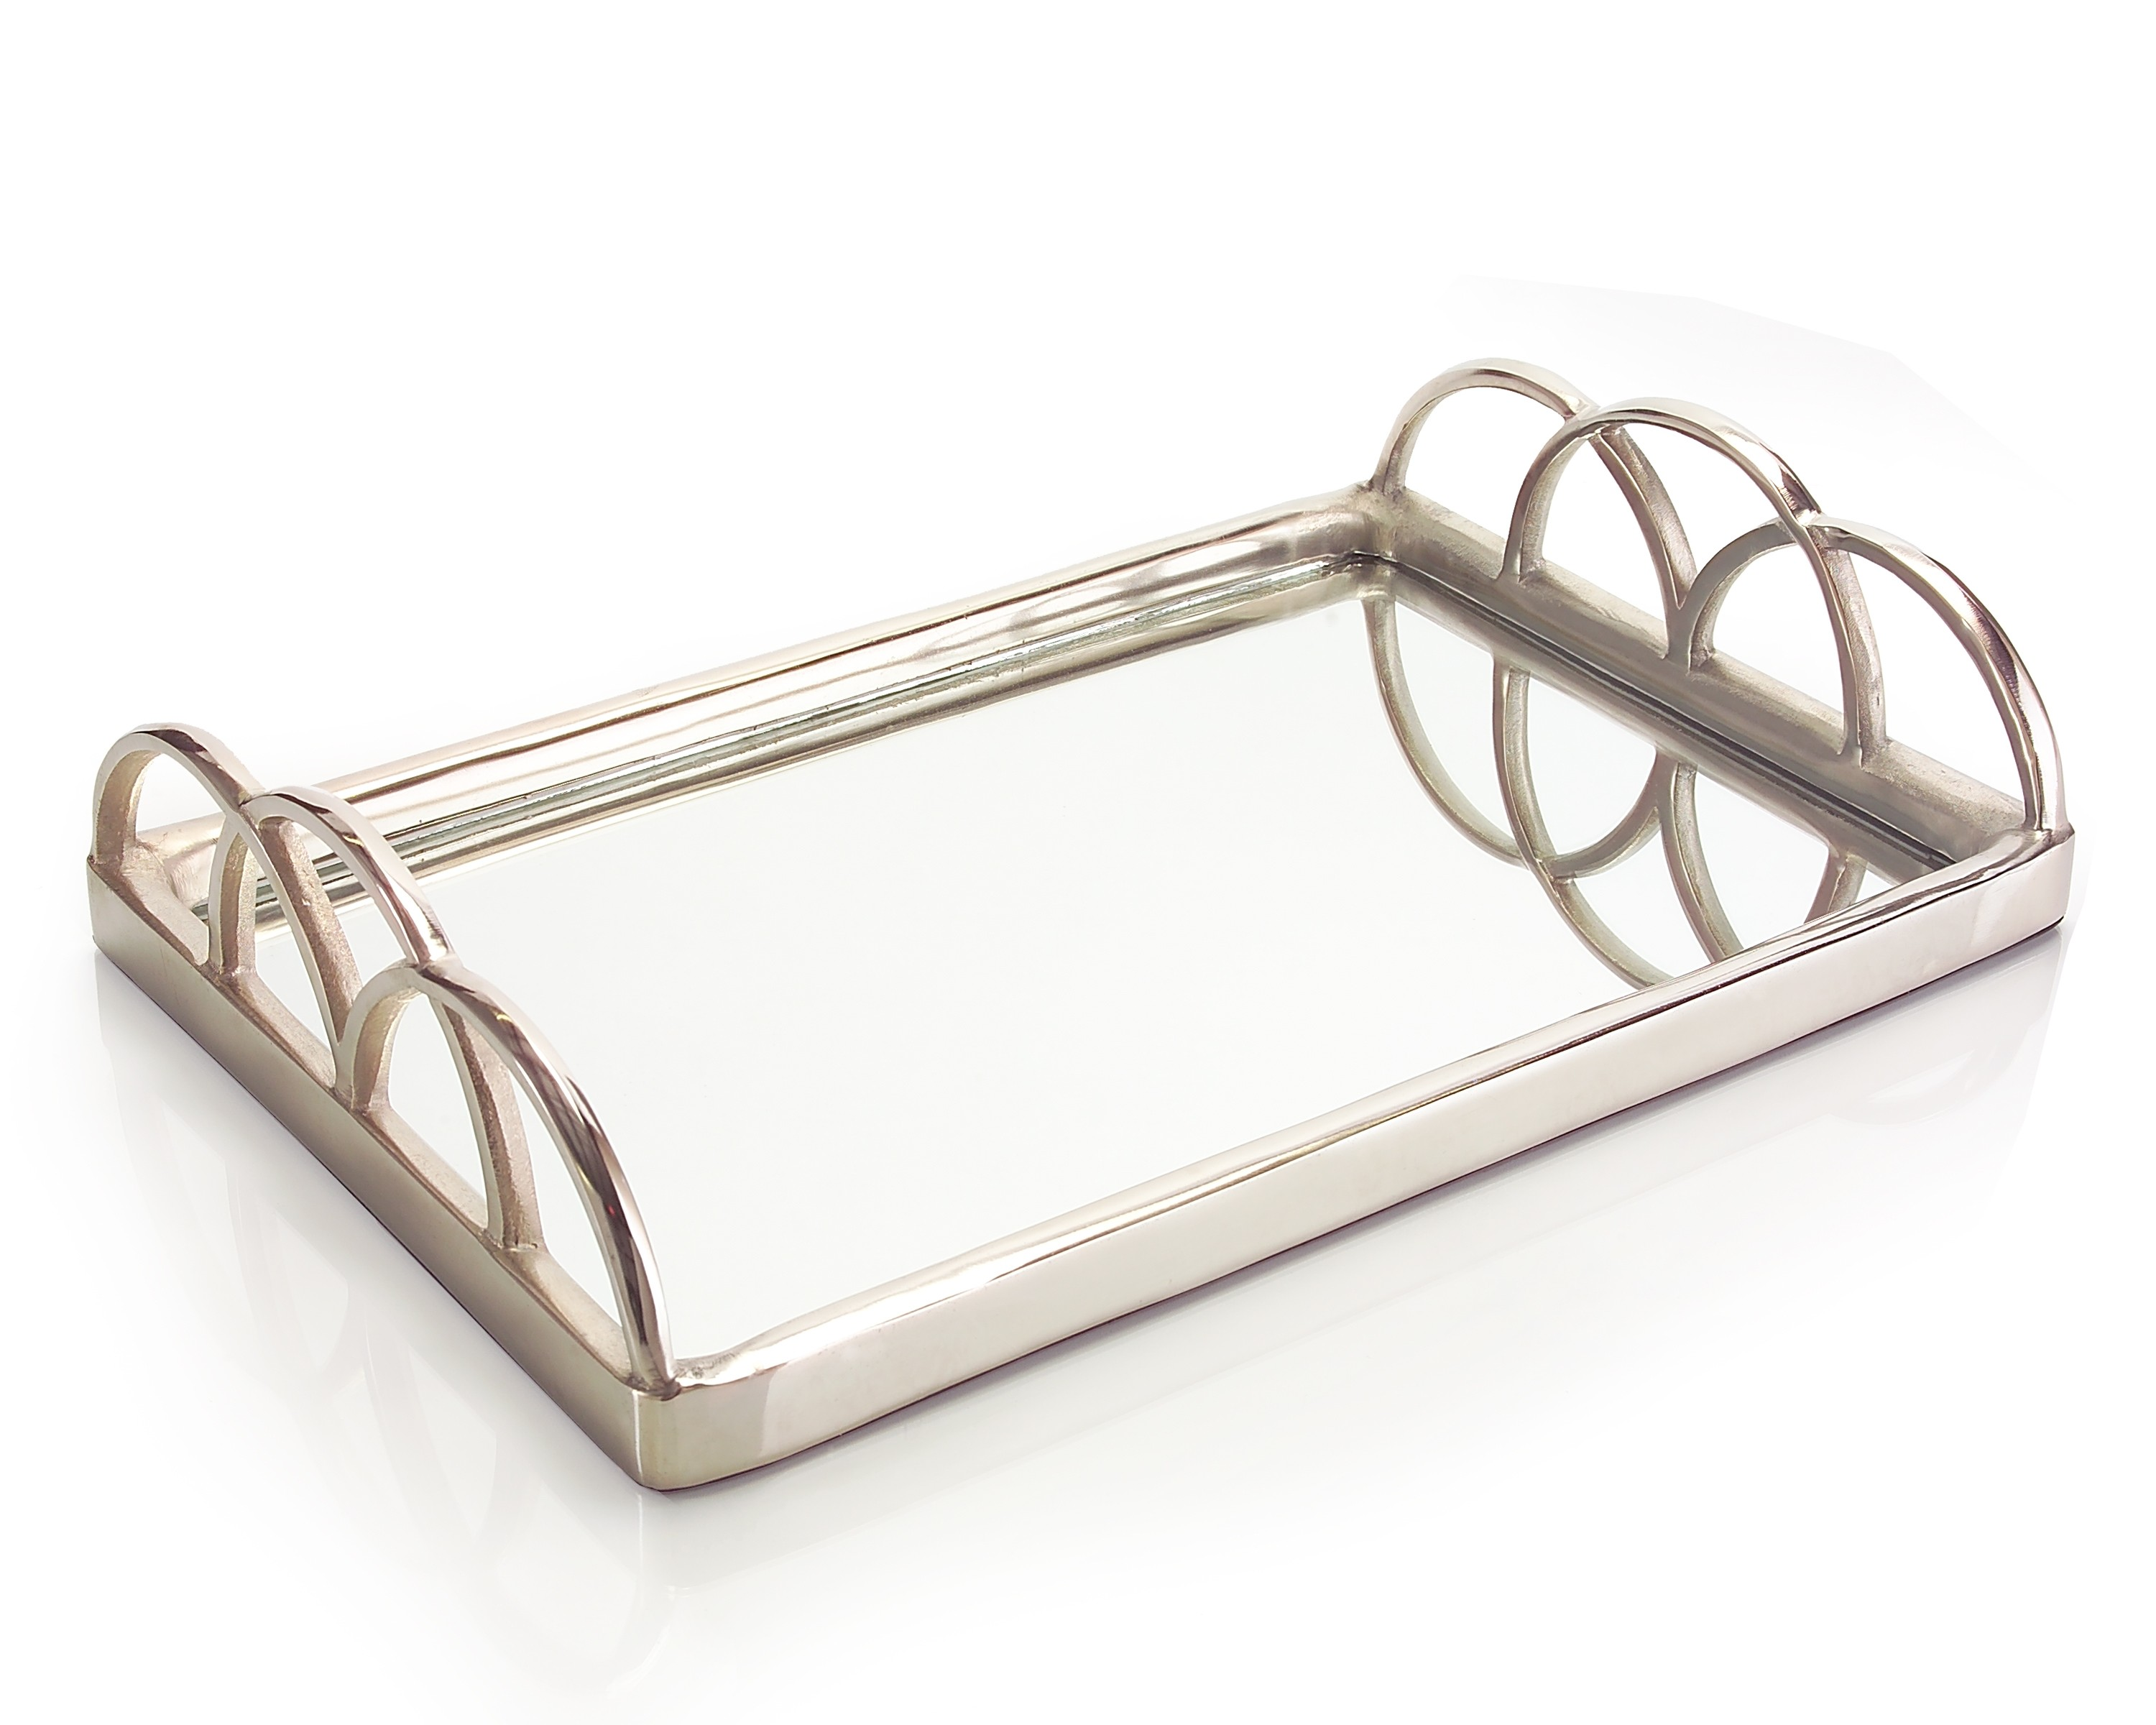 "5.5 x 24 x 15.5"" Sm Silver Mirrored Tray"